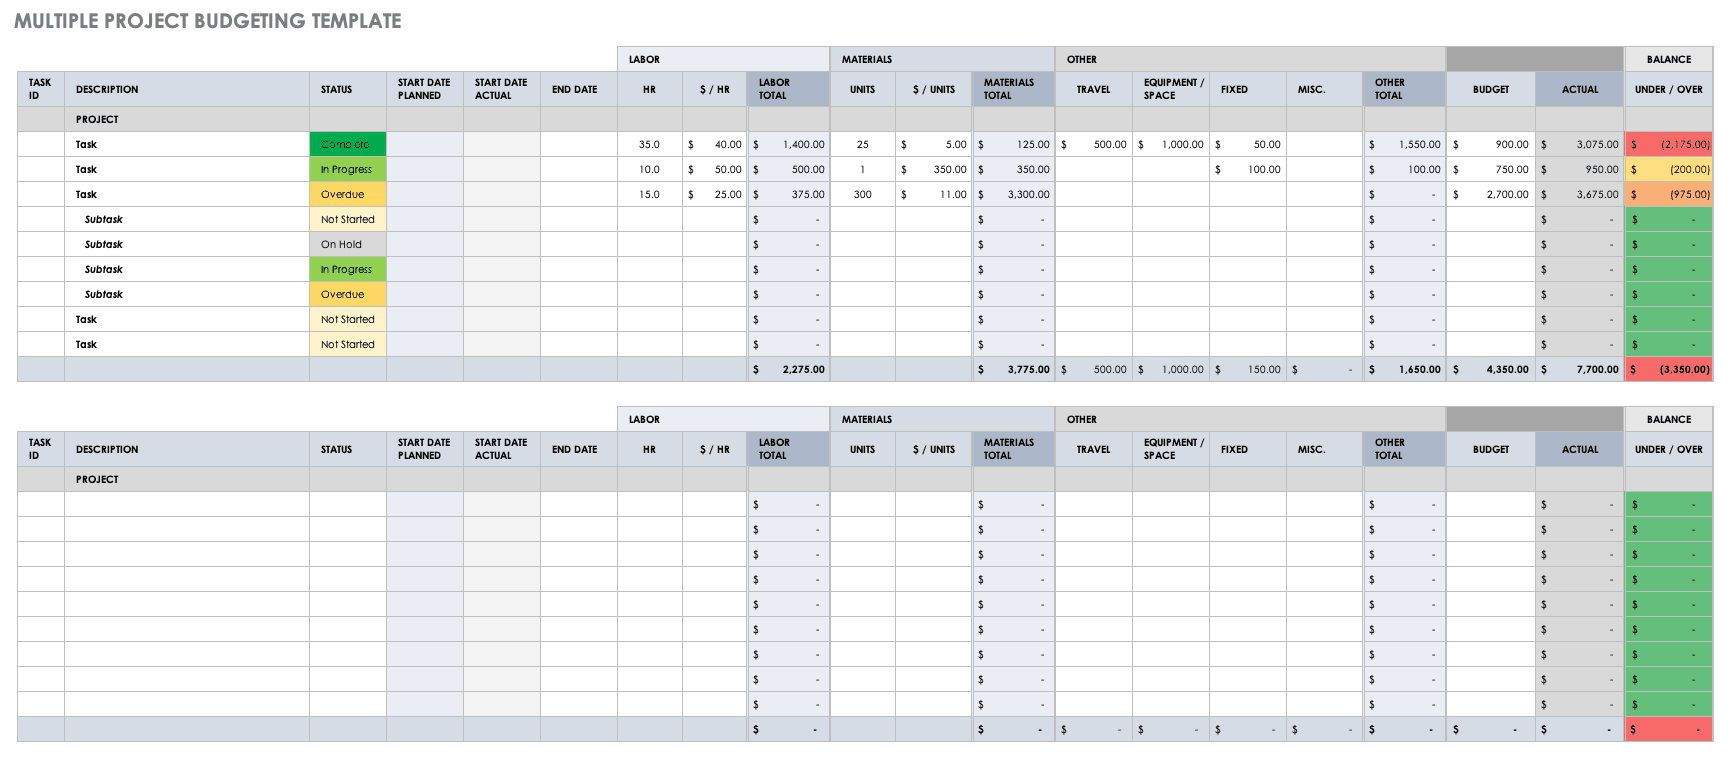 003 Simple Multiple Project Tracking Template Excel High Resolution  Free Download Xl Analysistabs-multiple-project-tracking-template-excel-2003-versionFull